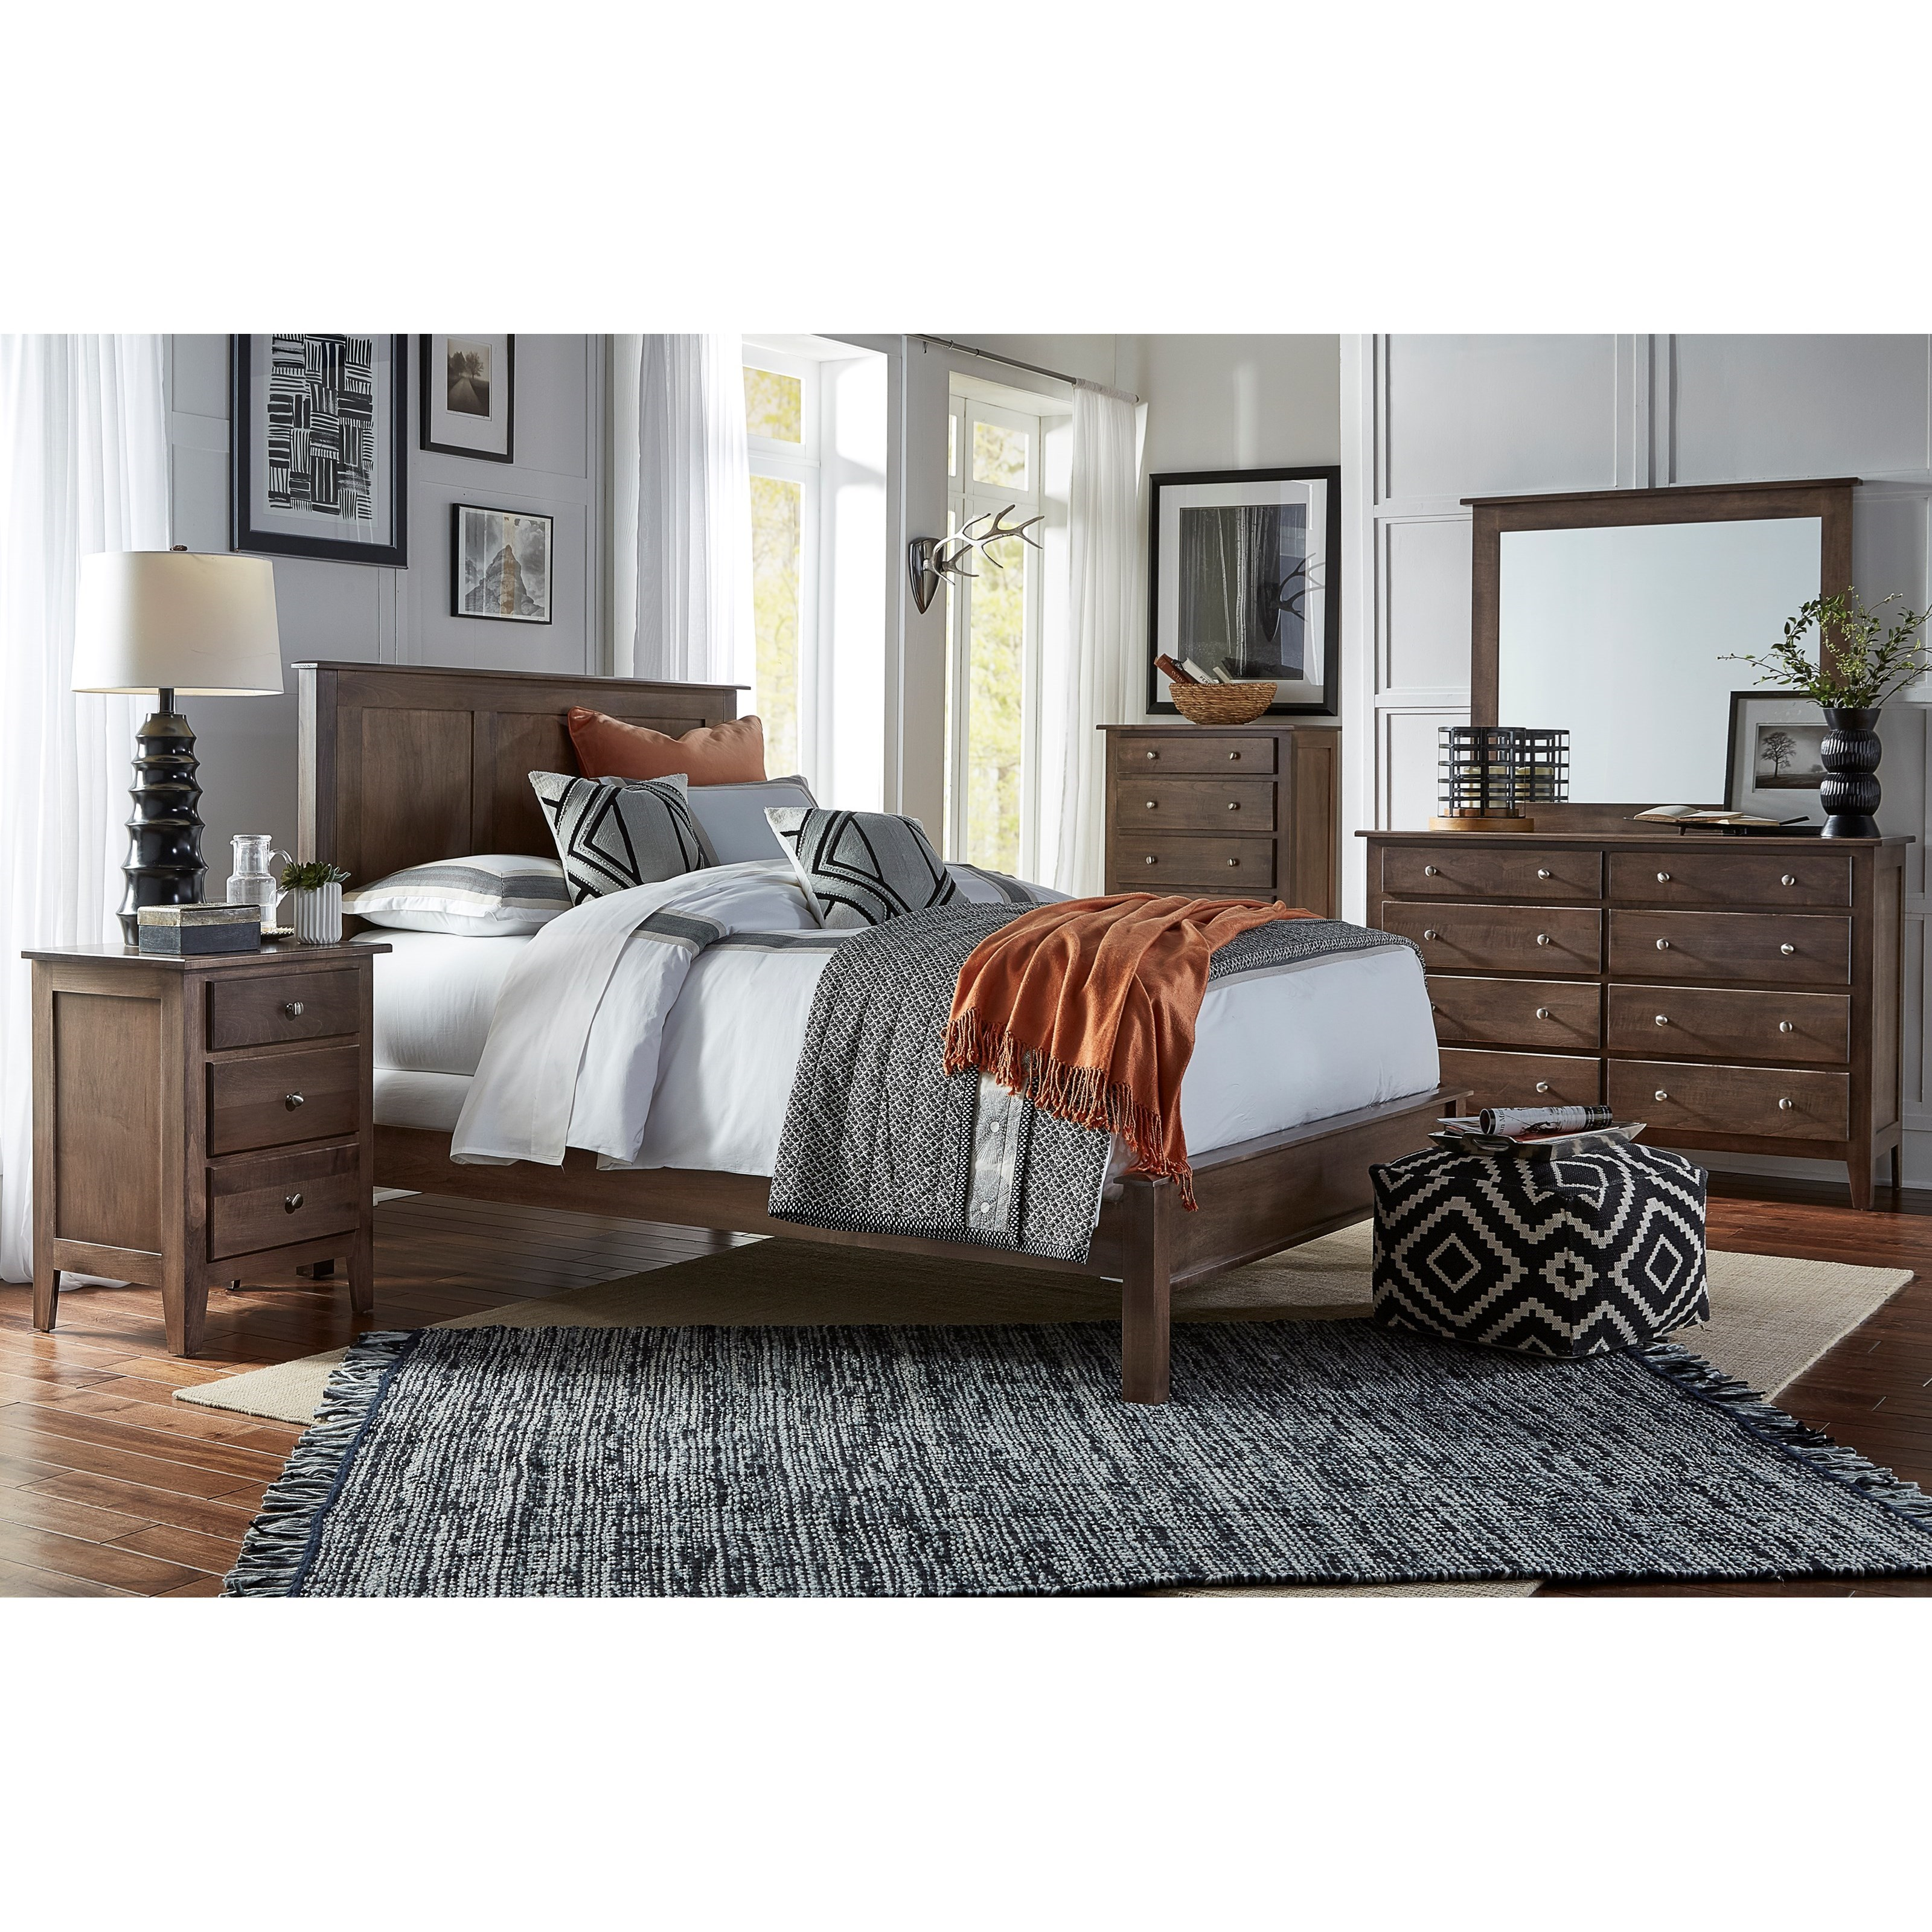 Mapleton Queen Bedroom Group by Daniel's Amish at H.L. Stephens